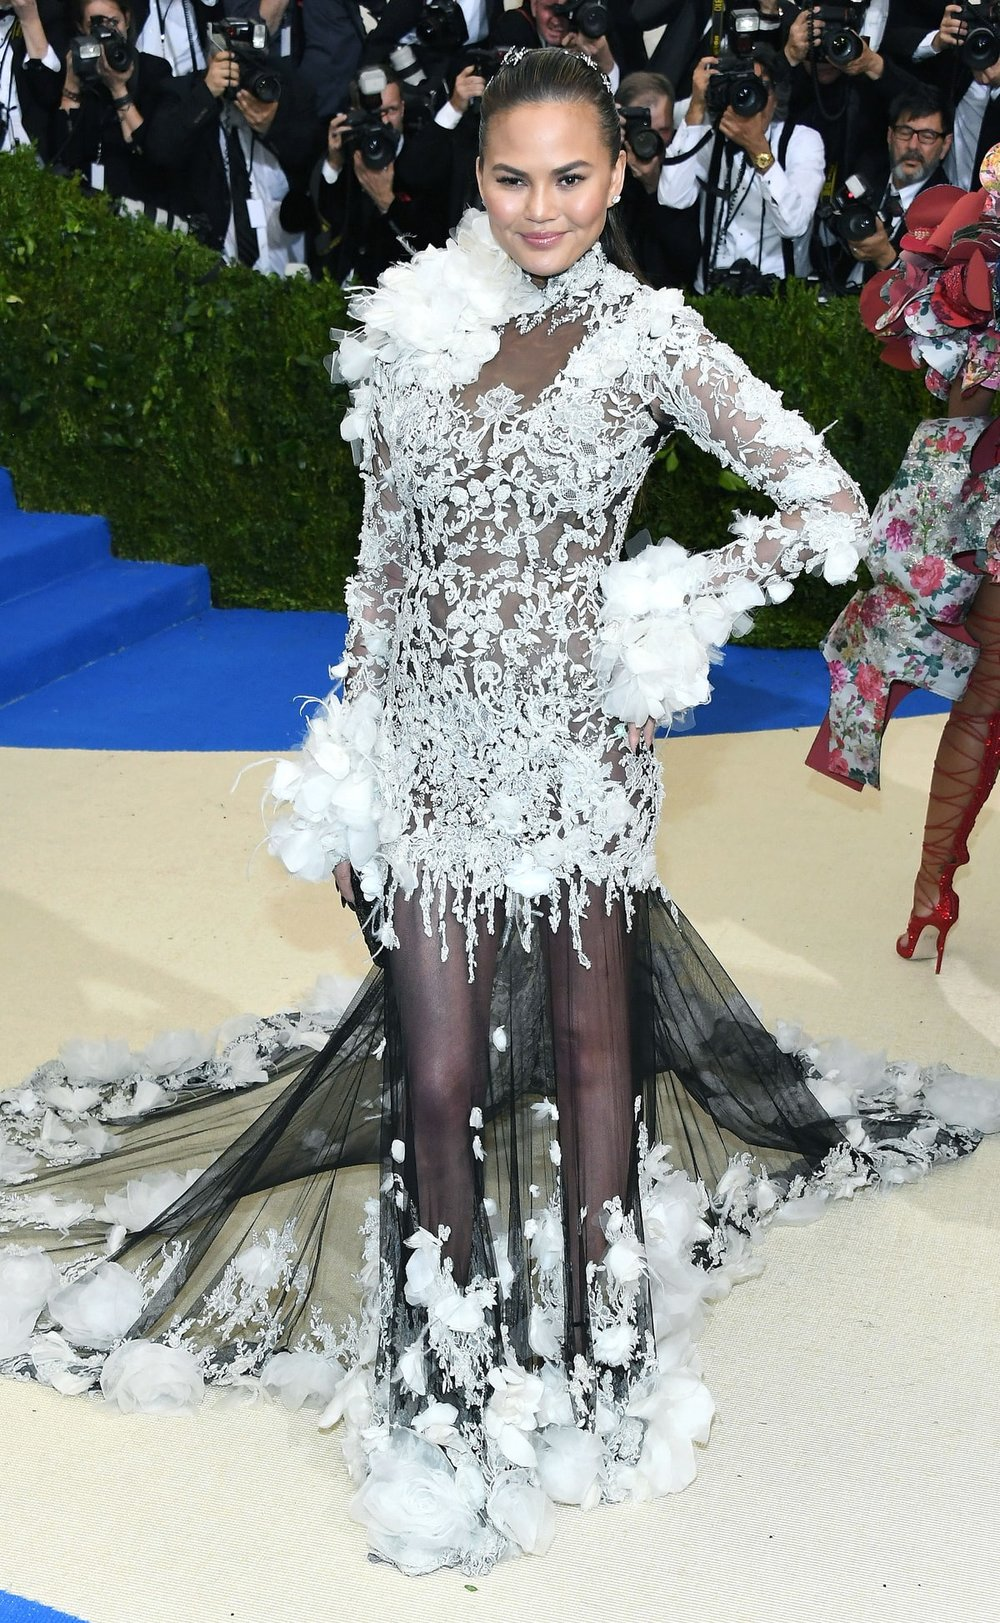 Chrissy Teigen  in Marchesa .  Marchesa is a fashion house that almost never gets it wrong. The sad thing is, they usually only dress one or two major celebrities at events like the Met so they didn't even have a chance to recover from this. This has to be the tackiest gown she's ever worn publicly. I'm getting all the Cruella Deville vibes and not in a good way.